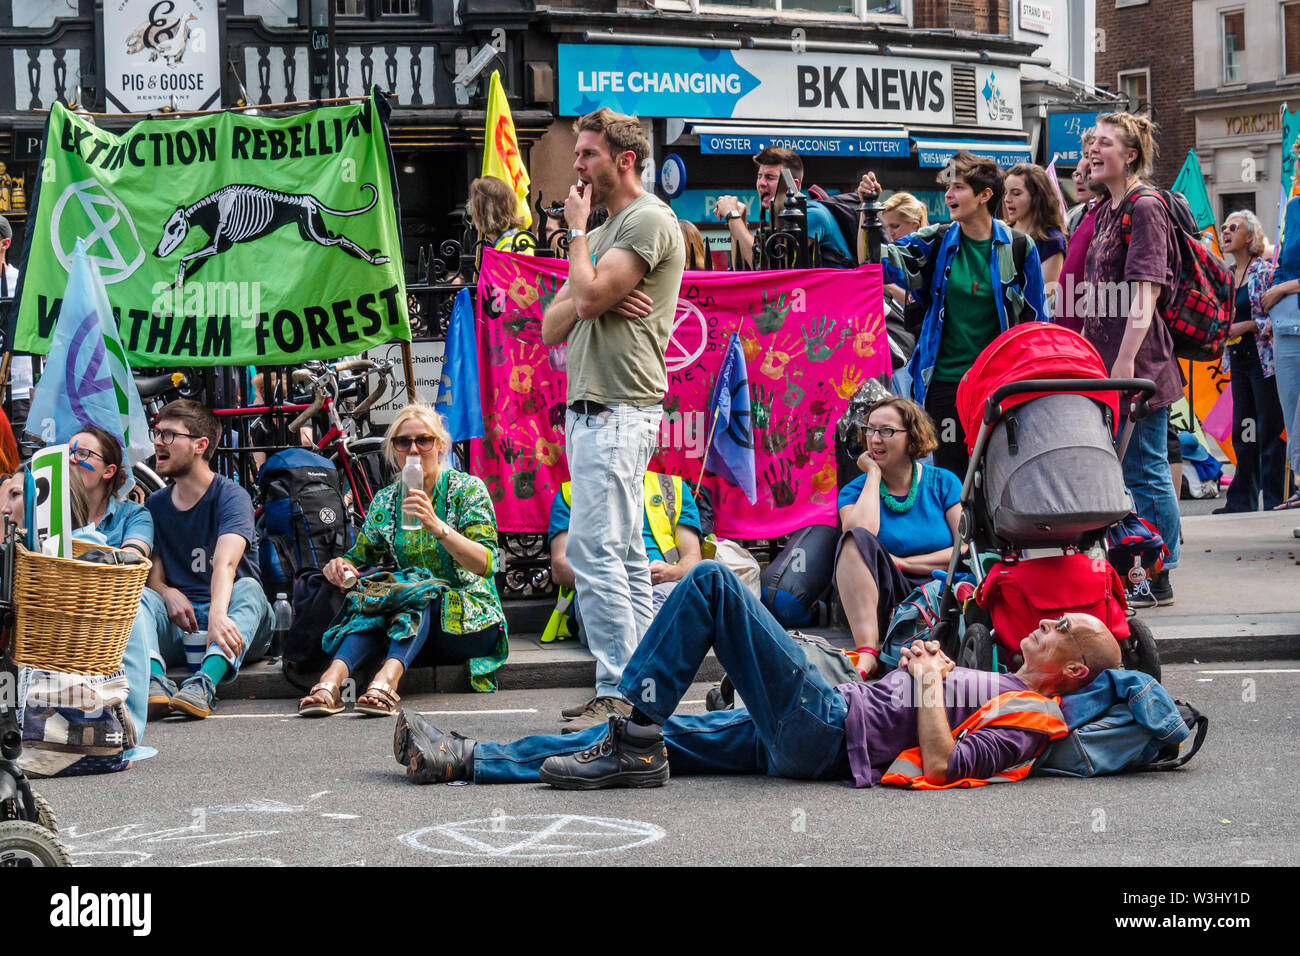 London, UK. 15th July 2019. People listen to speeches as Extinction Rebellion begins another series of protests in five major cities against the criminal inaction by the government on climate and ecological collapse. The protesters brought a yacht named after Polly Higgins who fought for years for an Ecocide Law to the Royal Courts of Justice and continued her fight blocking the Strand all day with performances, discussions, speeches, music and ceremonies in front of the yacht. Peter Marshall/Alamy Live News - Stock Image